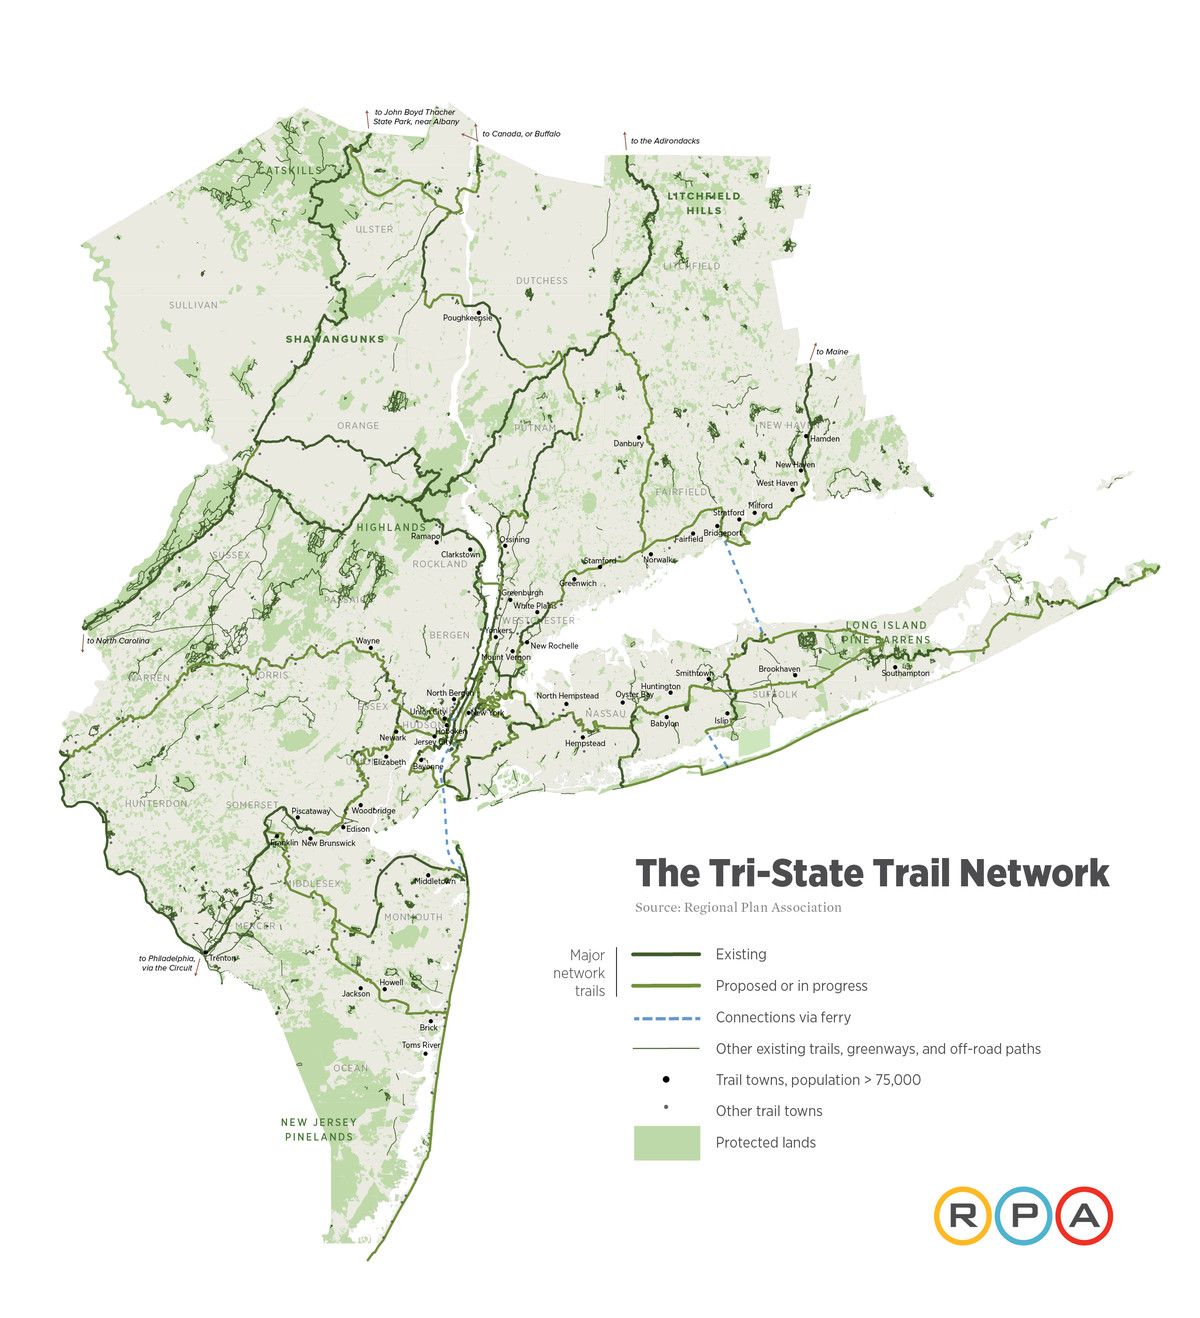 Map Of New York Tri State Area.Regional Plan Association Proposes 1 650 Mile Tri State Trail System